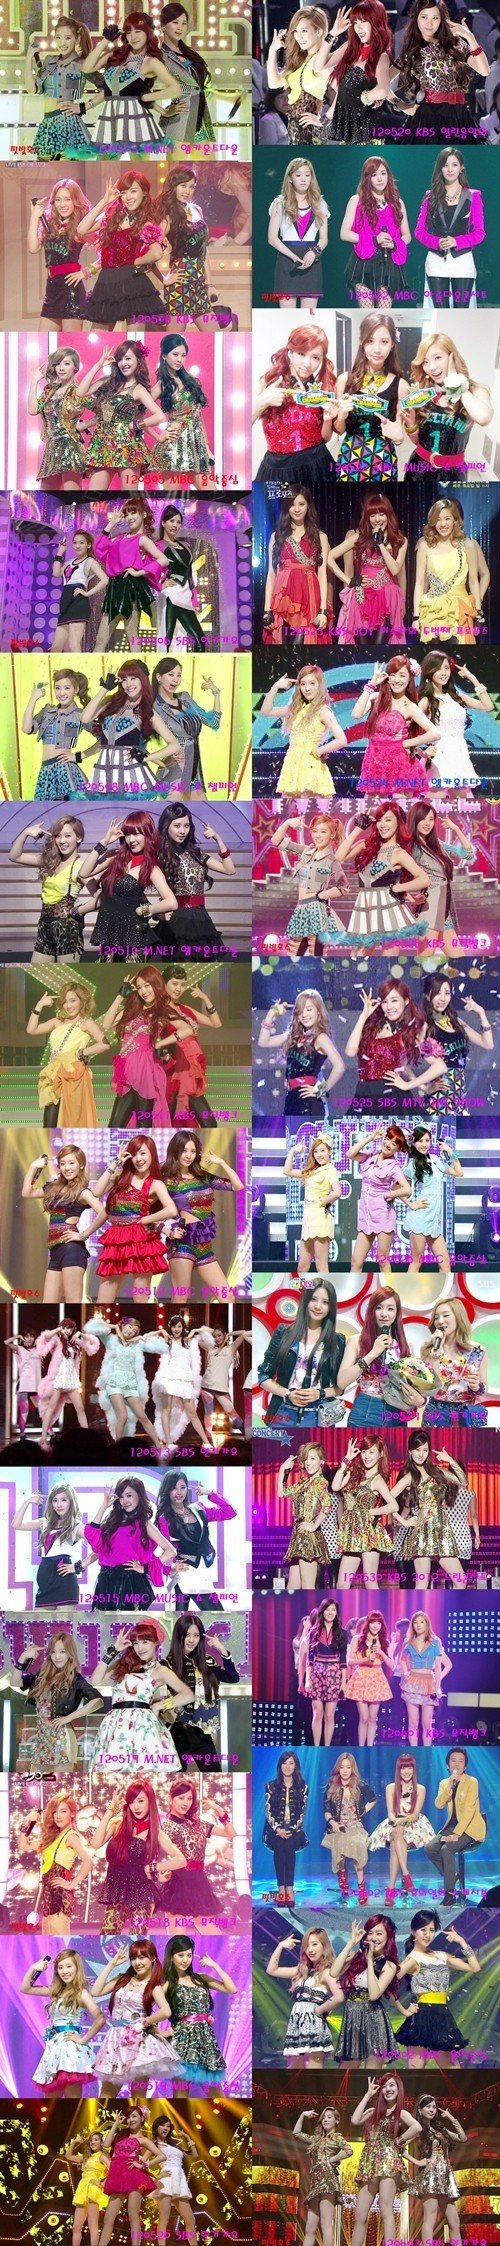 TaeTiSeo's Different Stage Outfit Resembles a Fashion Showkey=>0 count1